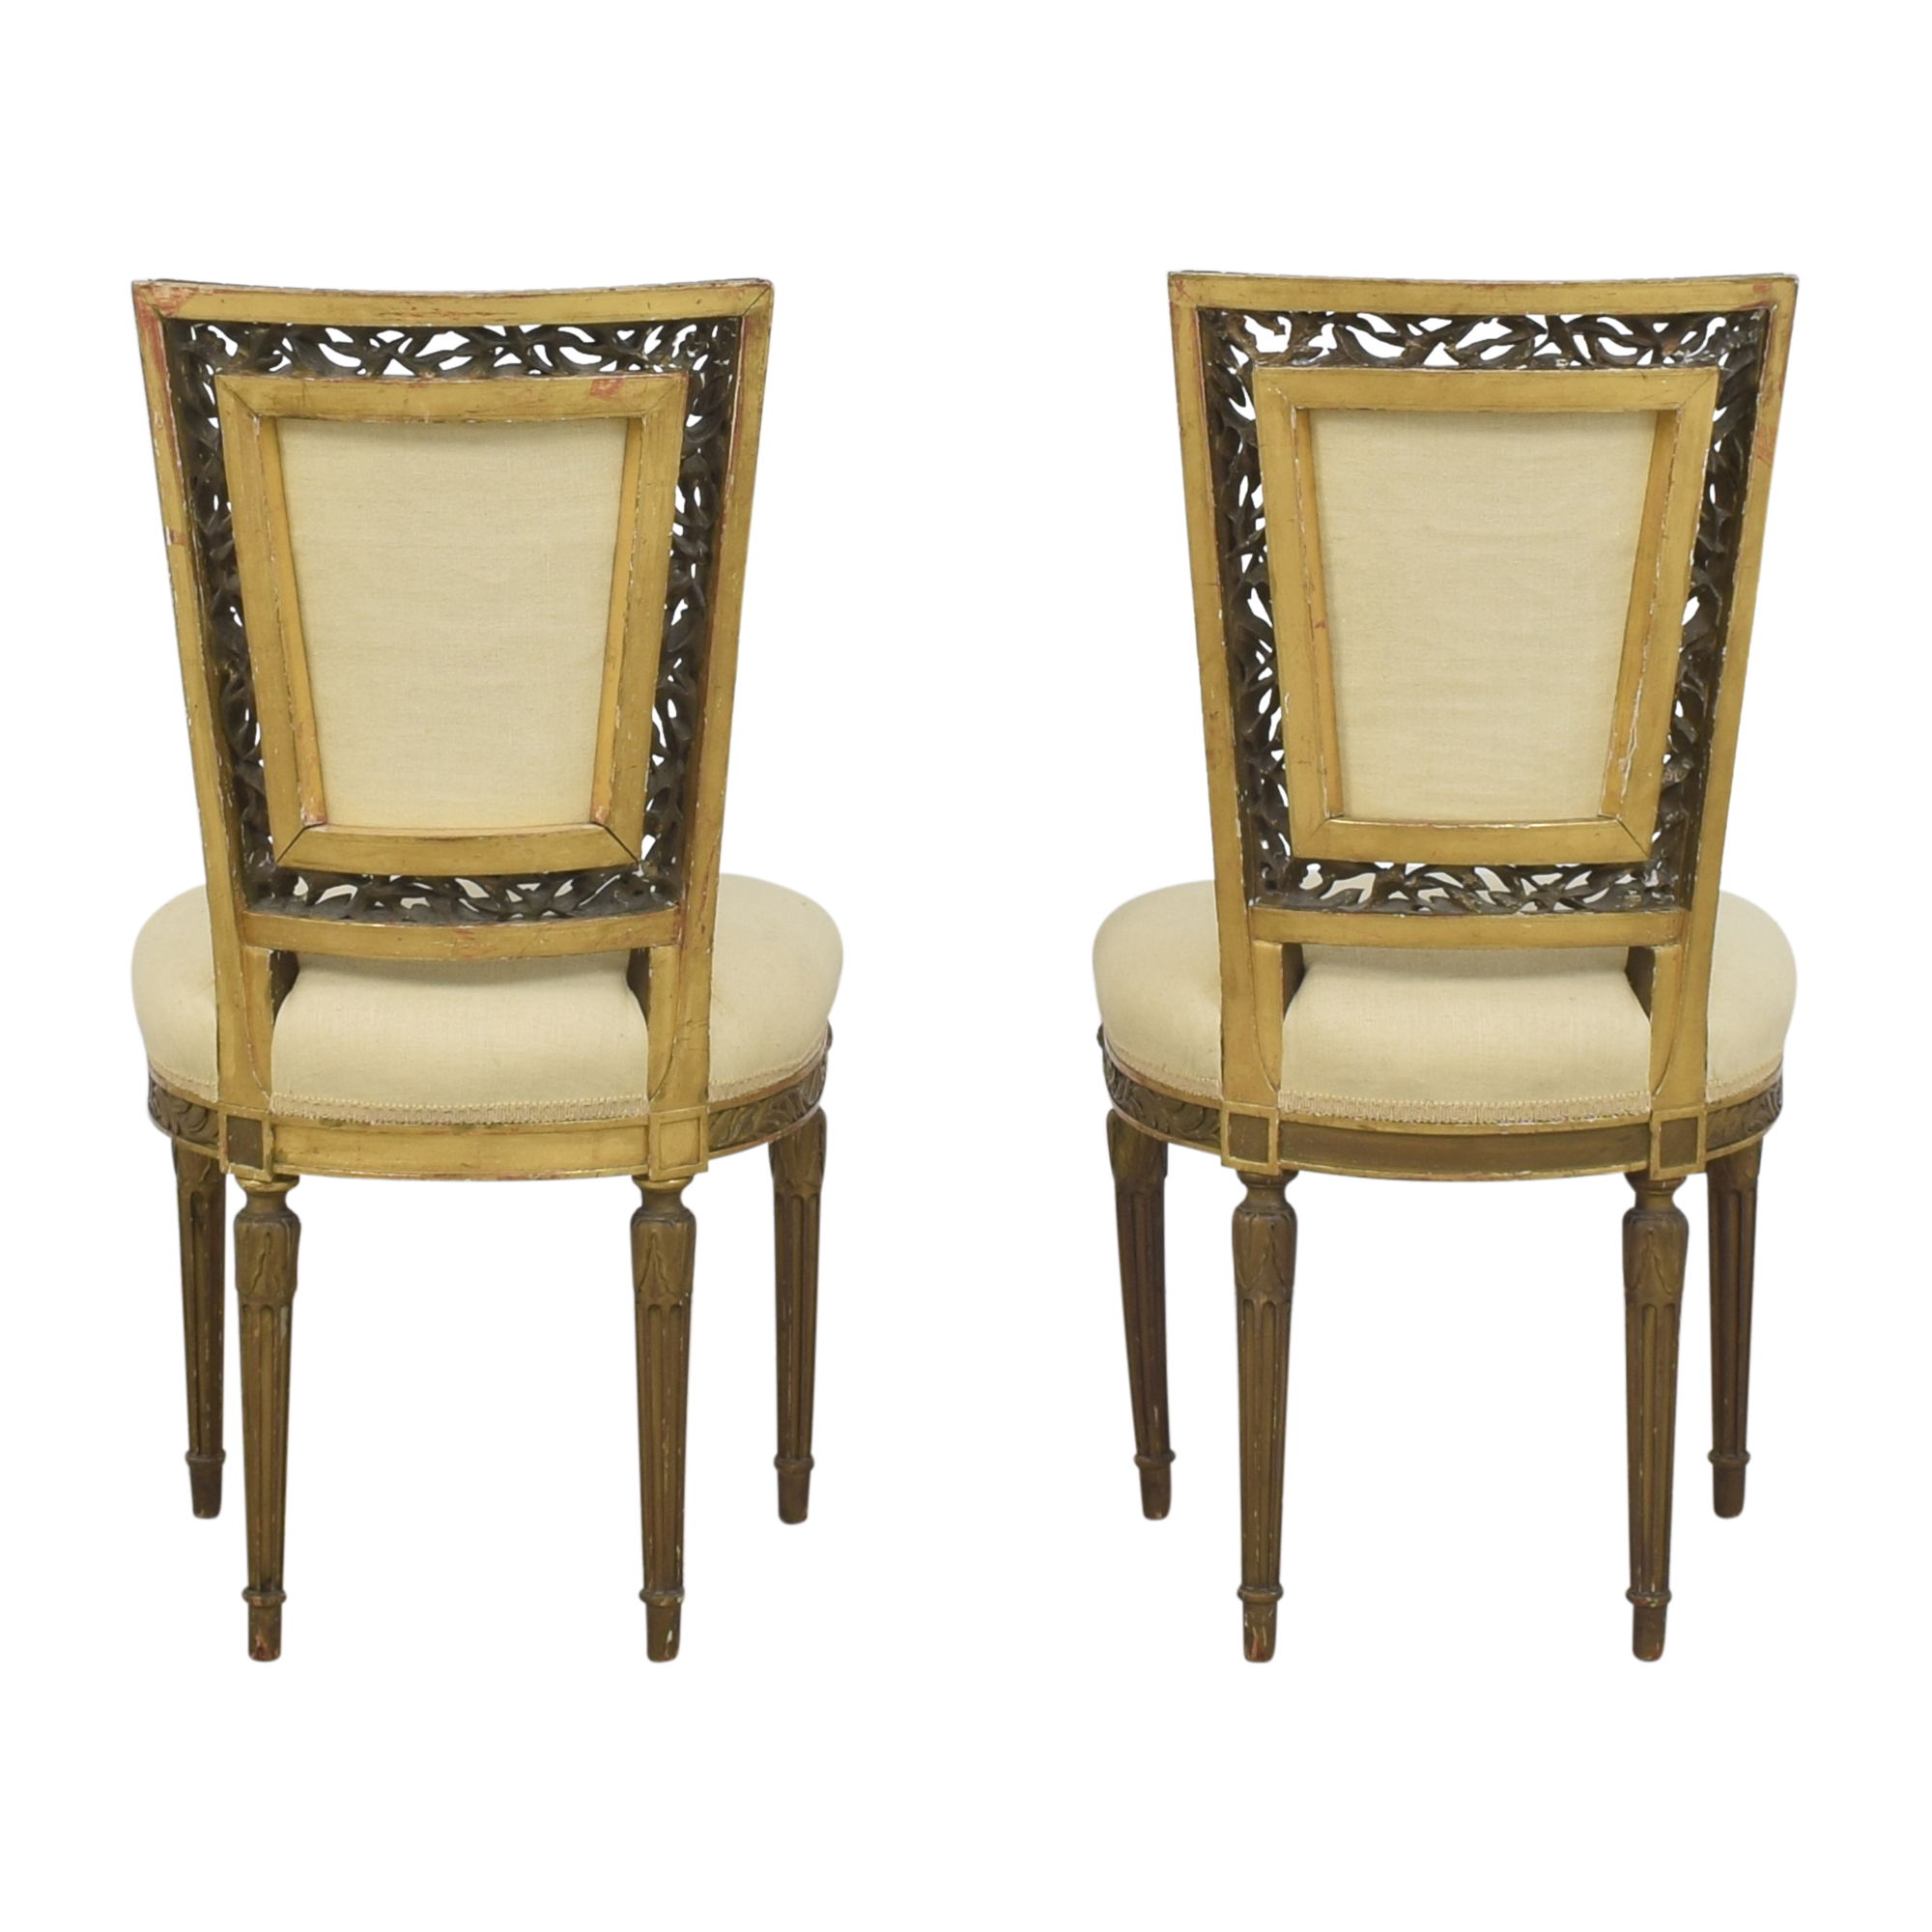 Louis XVI Style Accent Chairs dimensions